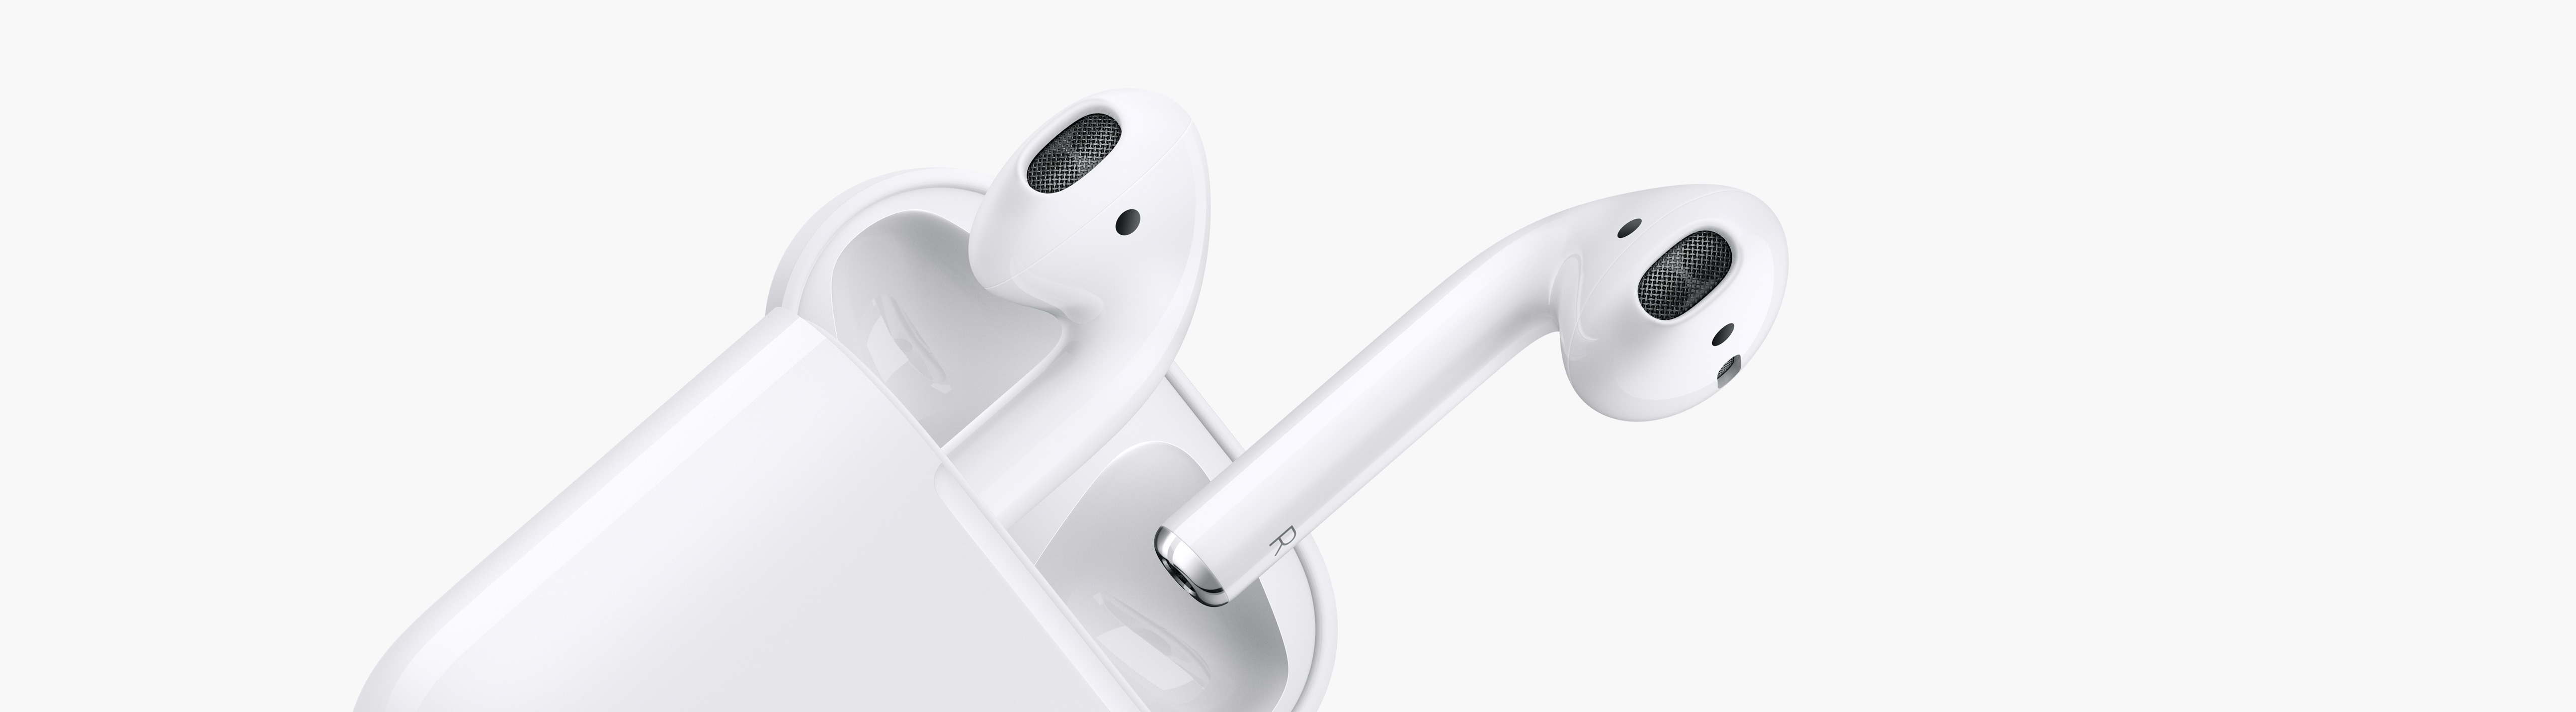 AirPods inclinados